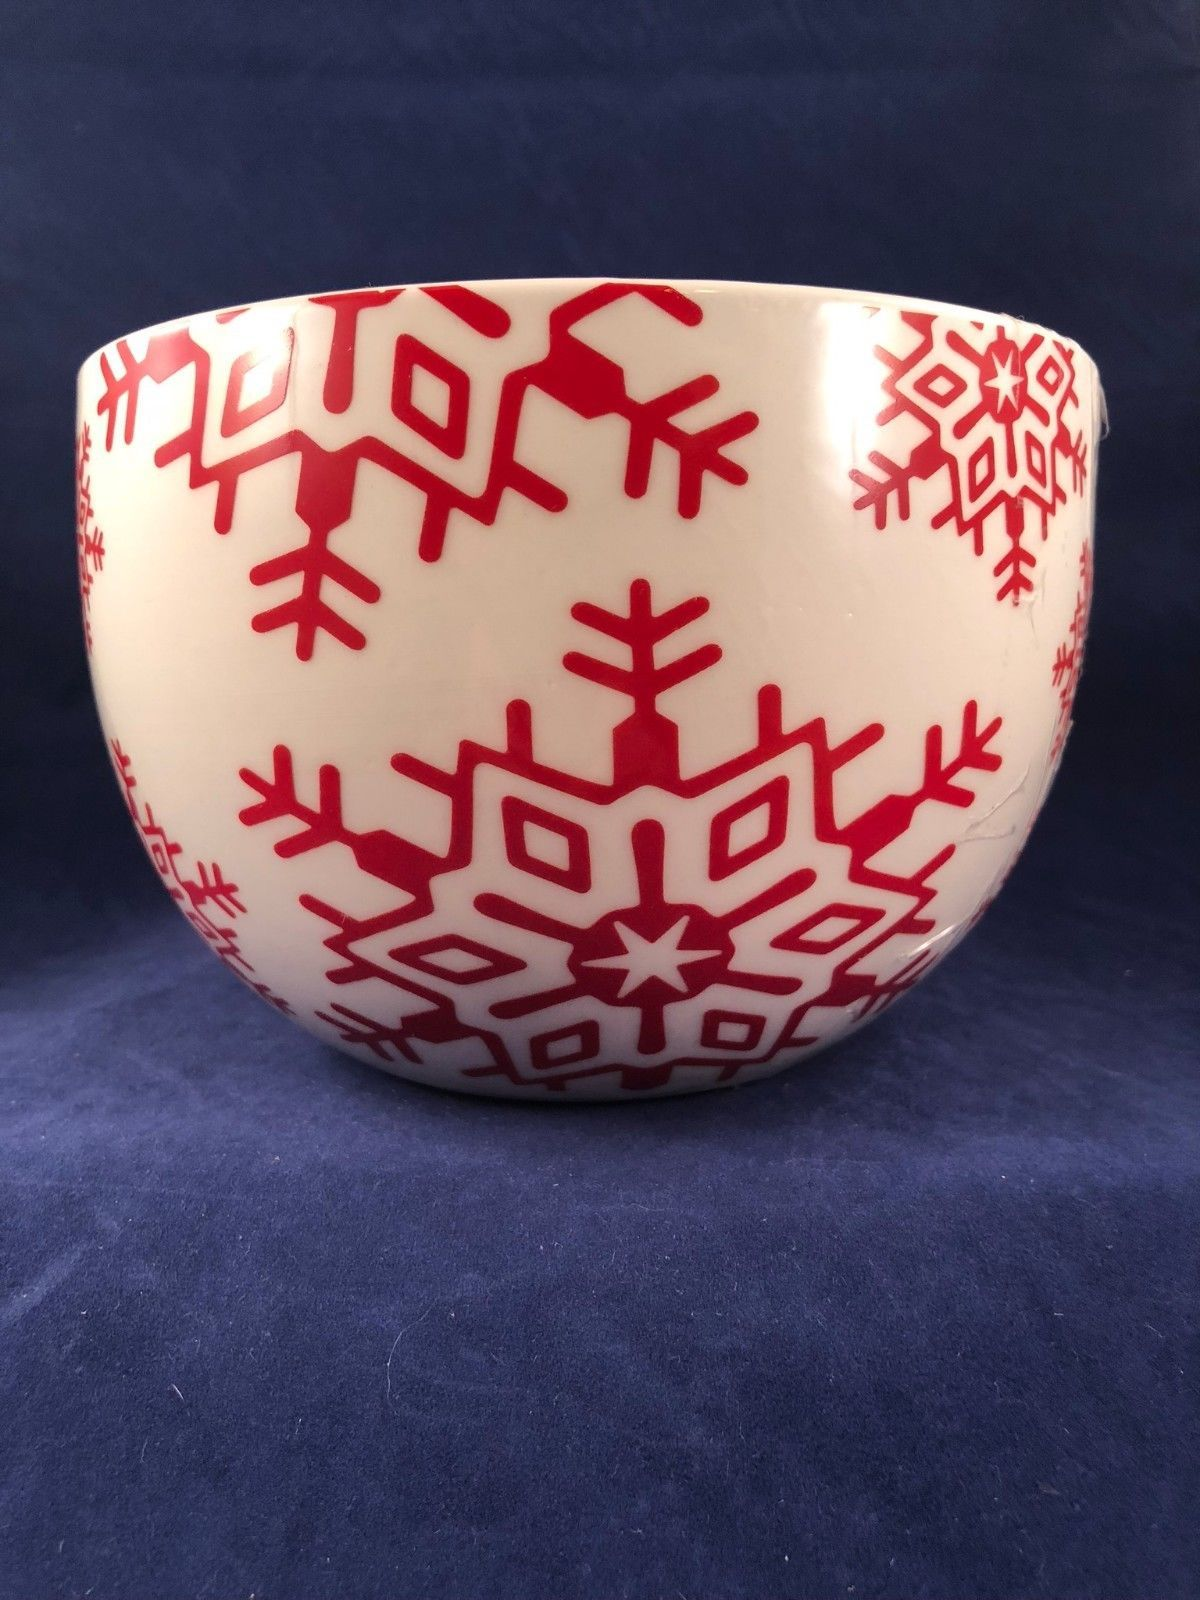 CRATE&BARREL HOLIDAY CHRISTMAS SNOWFLAKE NESTING BOWLS Set 3 Red & White Baking